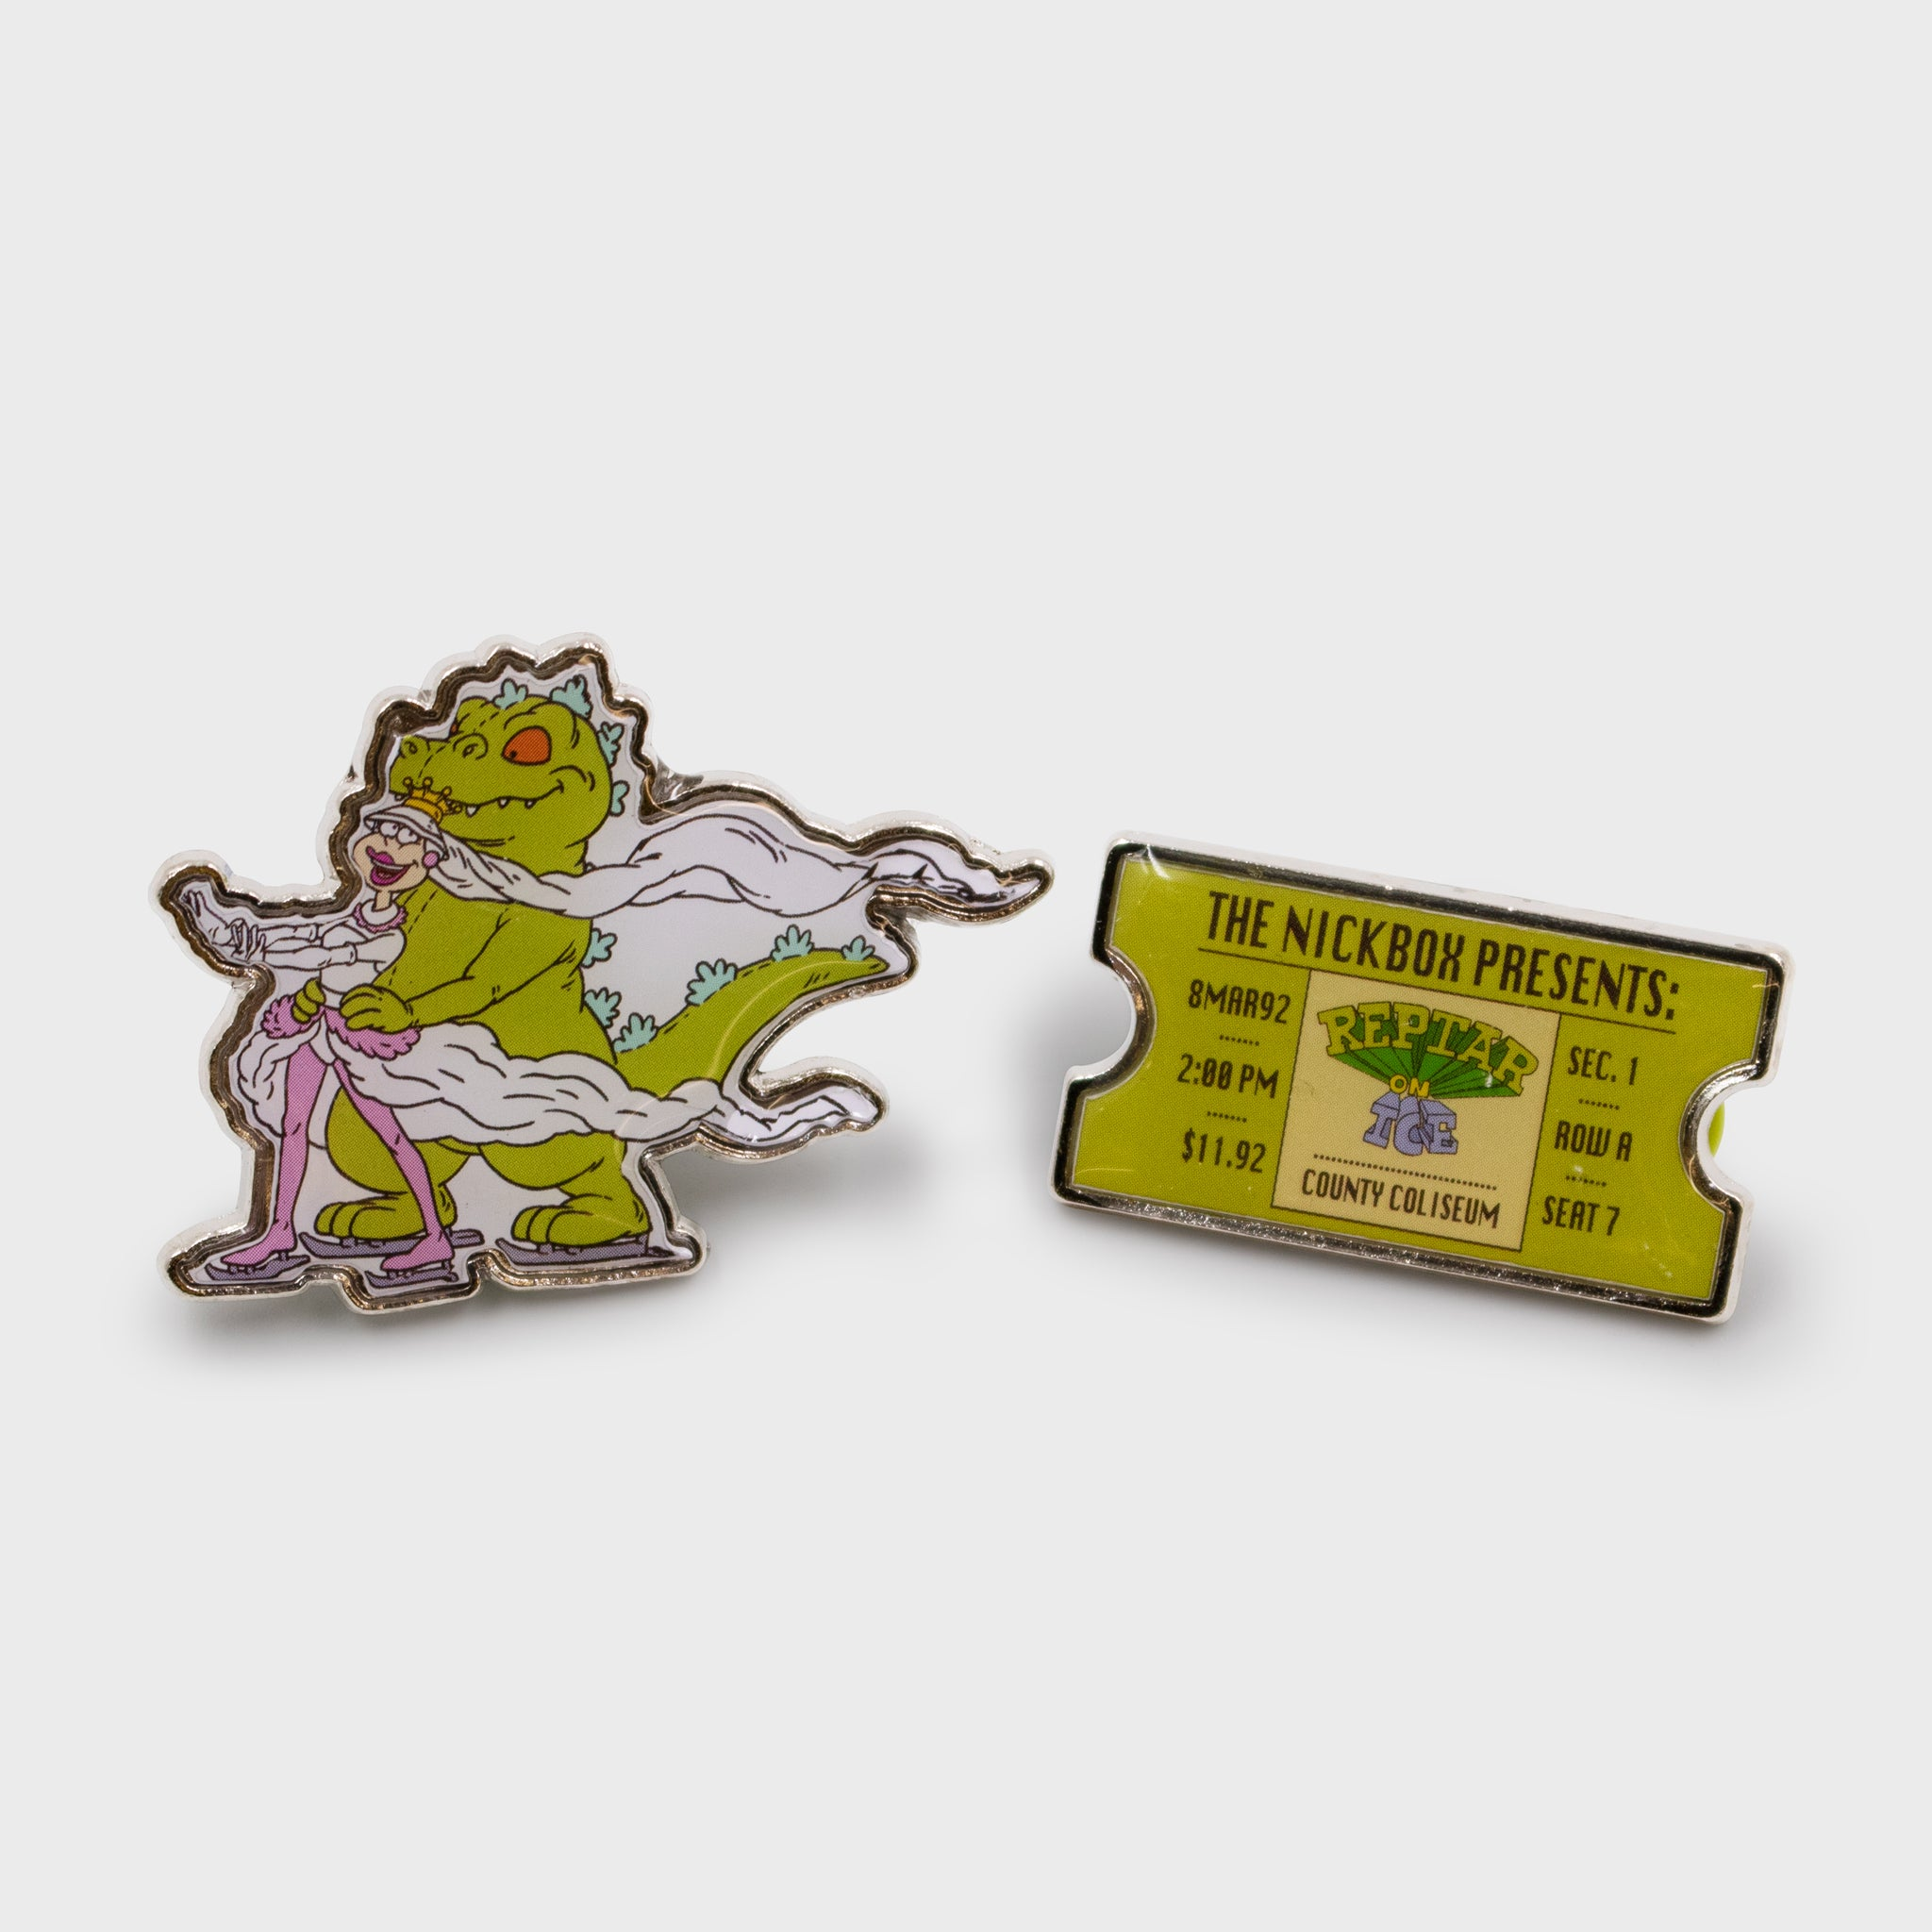 the nick box nickelodeon 90s kids 90s cartoons nostalgia throwback nostalgic classic subscription quarterly exclusive limited edition collectible reptar rugrats enamel pin culturefly